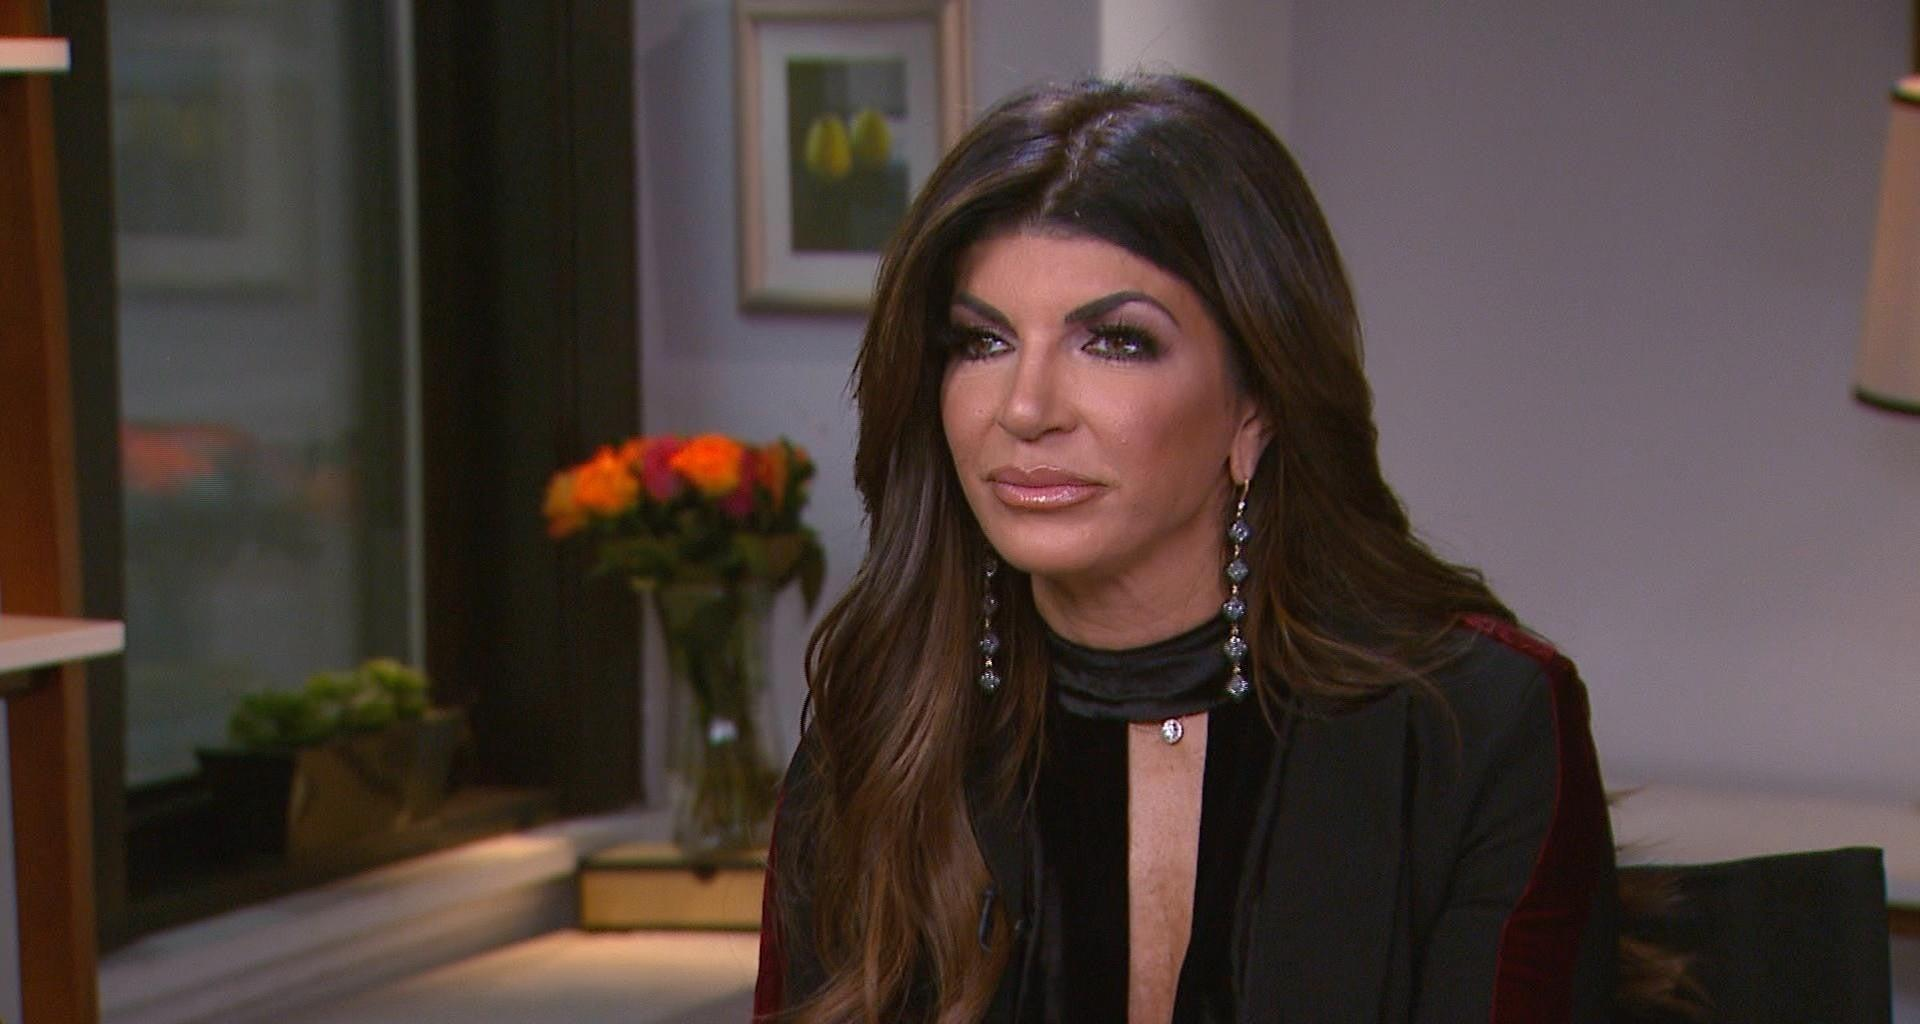 Teresa Giudice Leaning On Her Family After Dad's Passing - She's 'Devastated' But Happy He's Done Suffering!